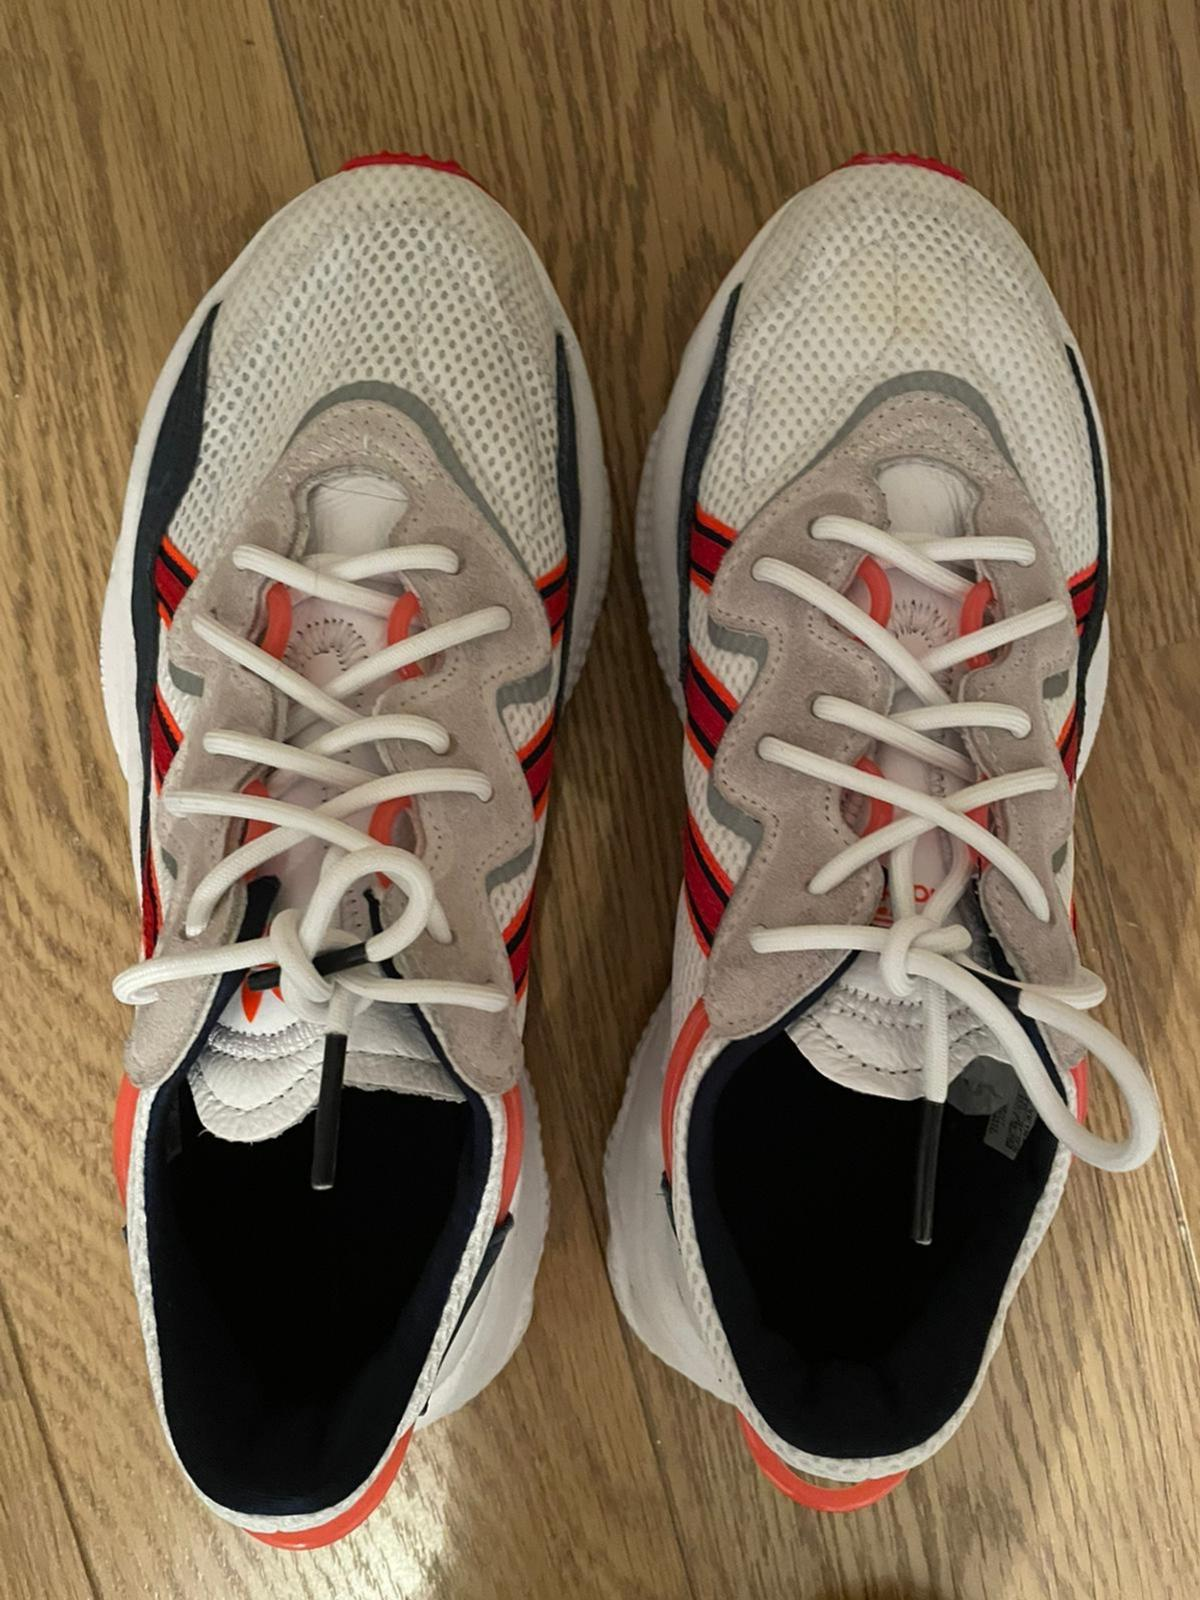 Adidas ozweego men's trainers Great condition, worn twice Uk size 9 RRP £90